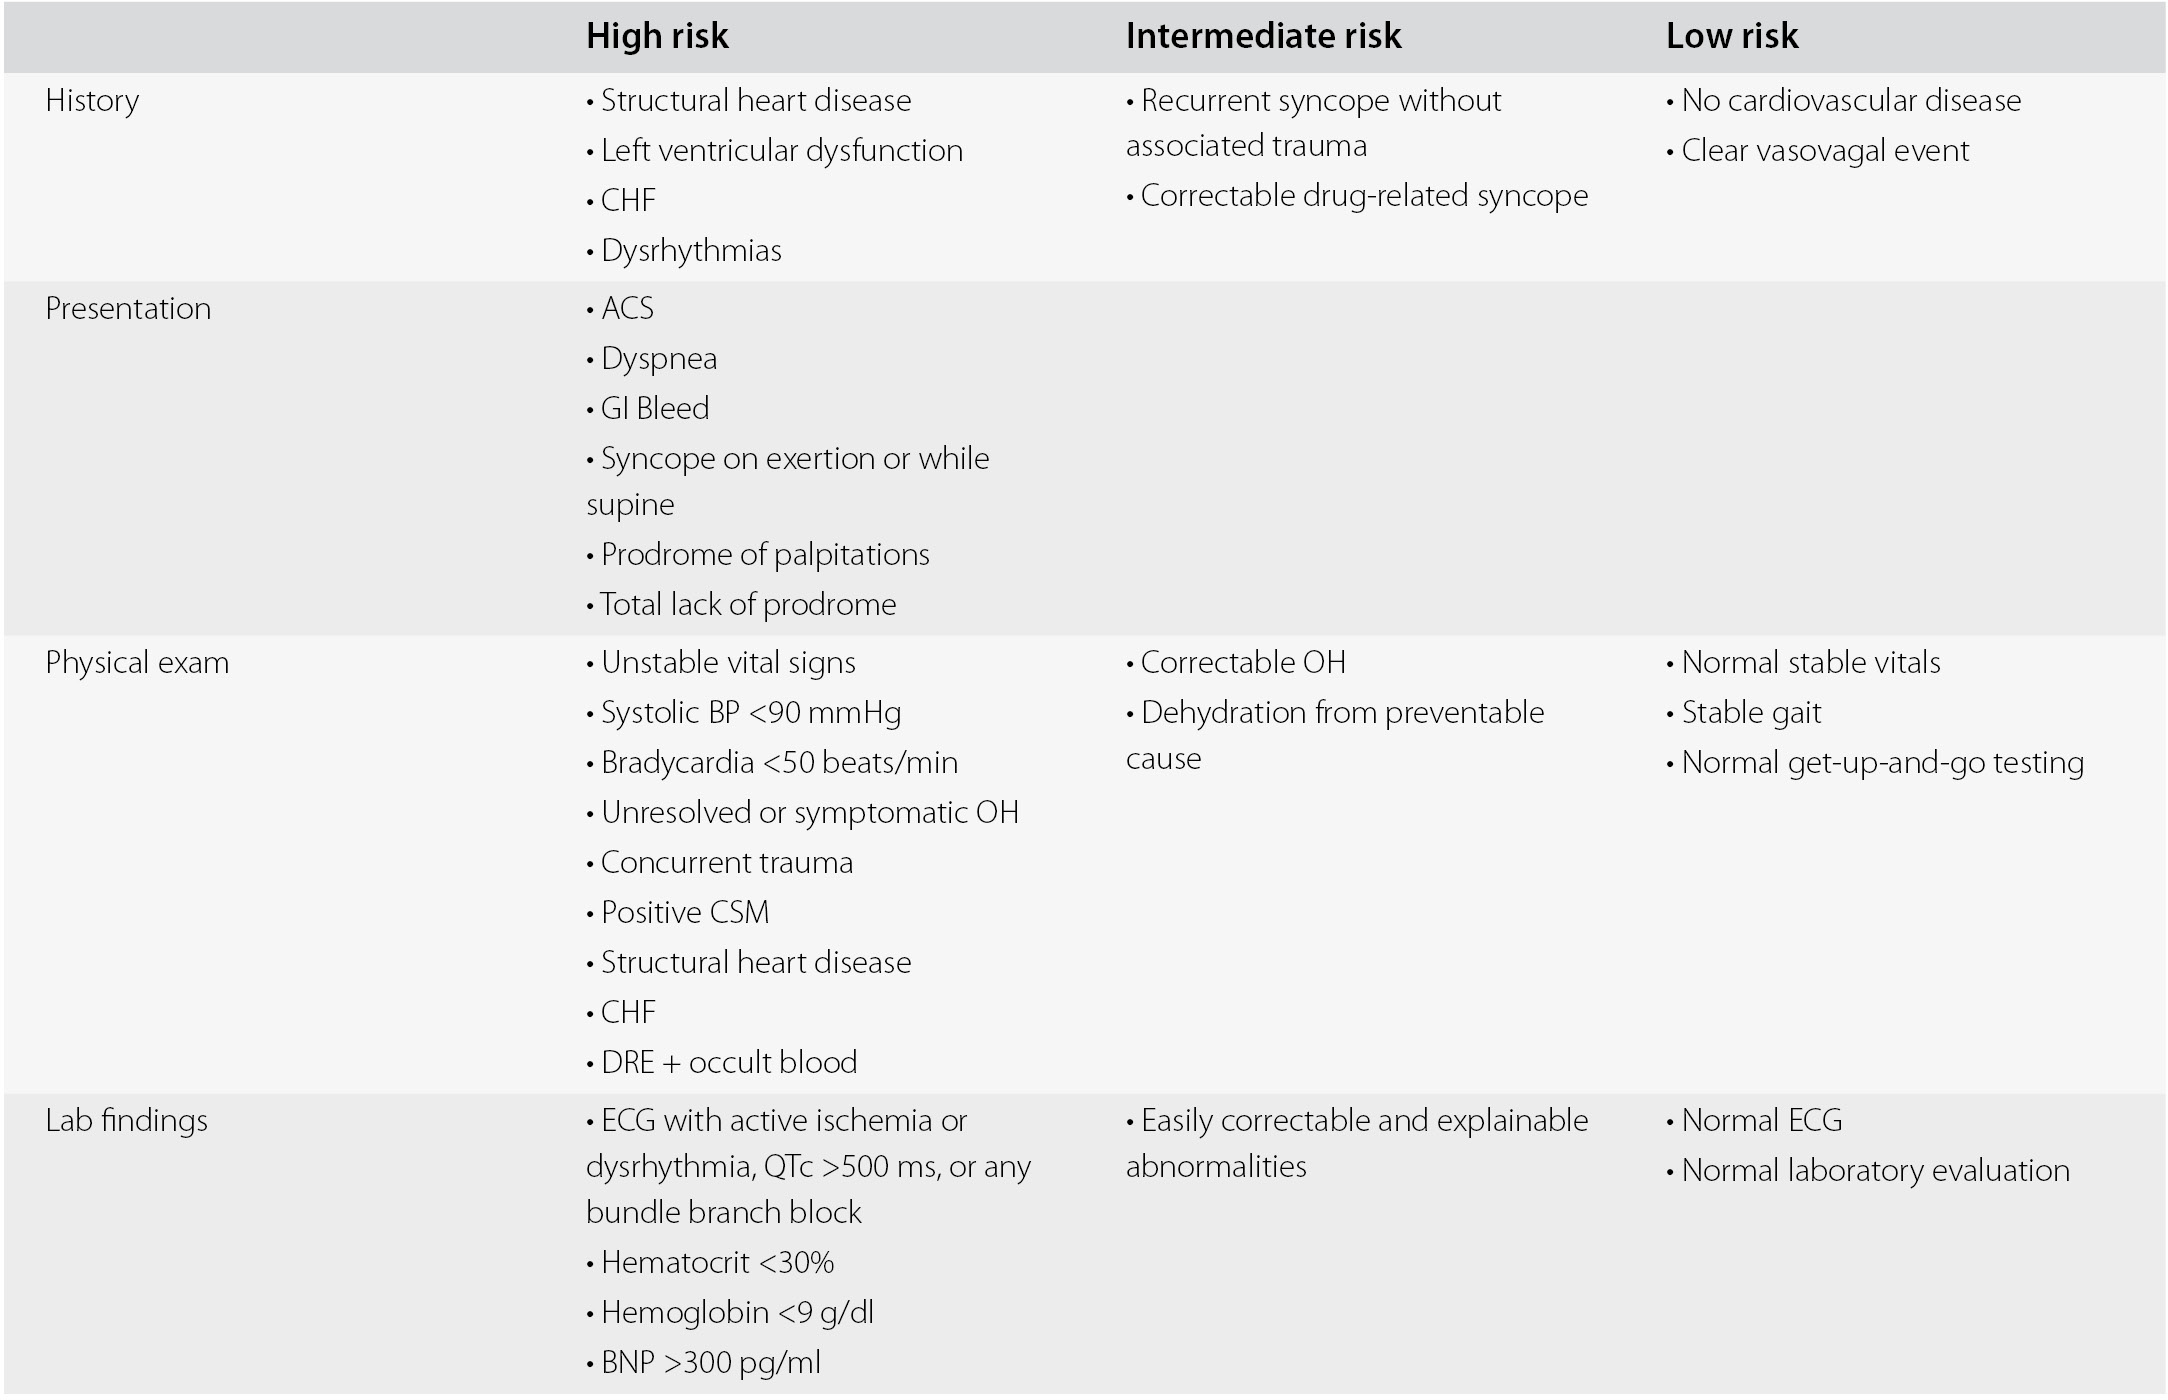 Common high-risk presentations in the elderly (Section 2